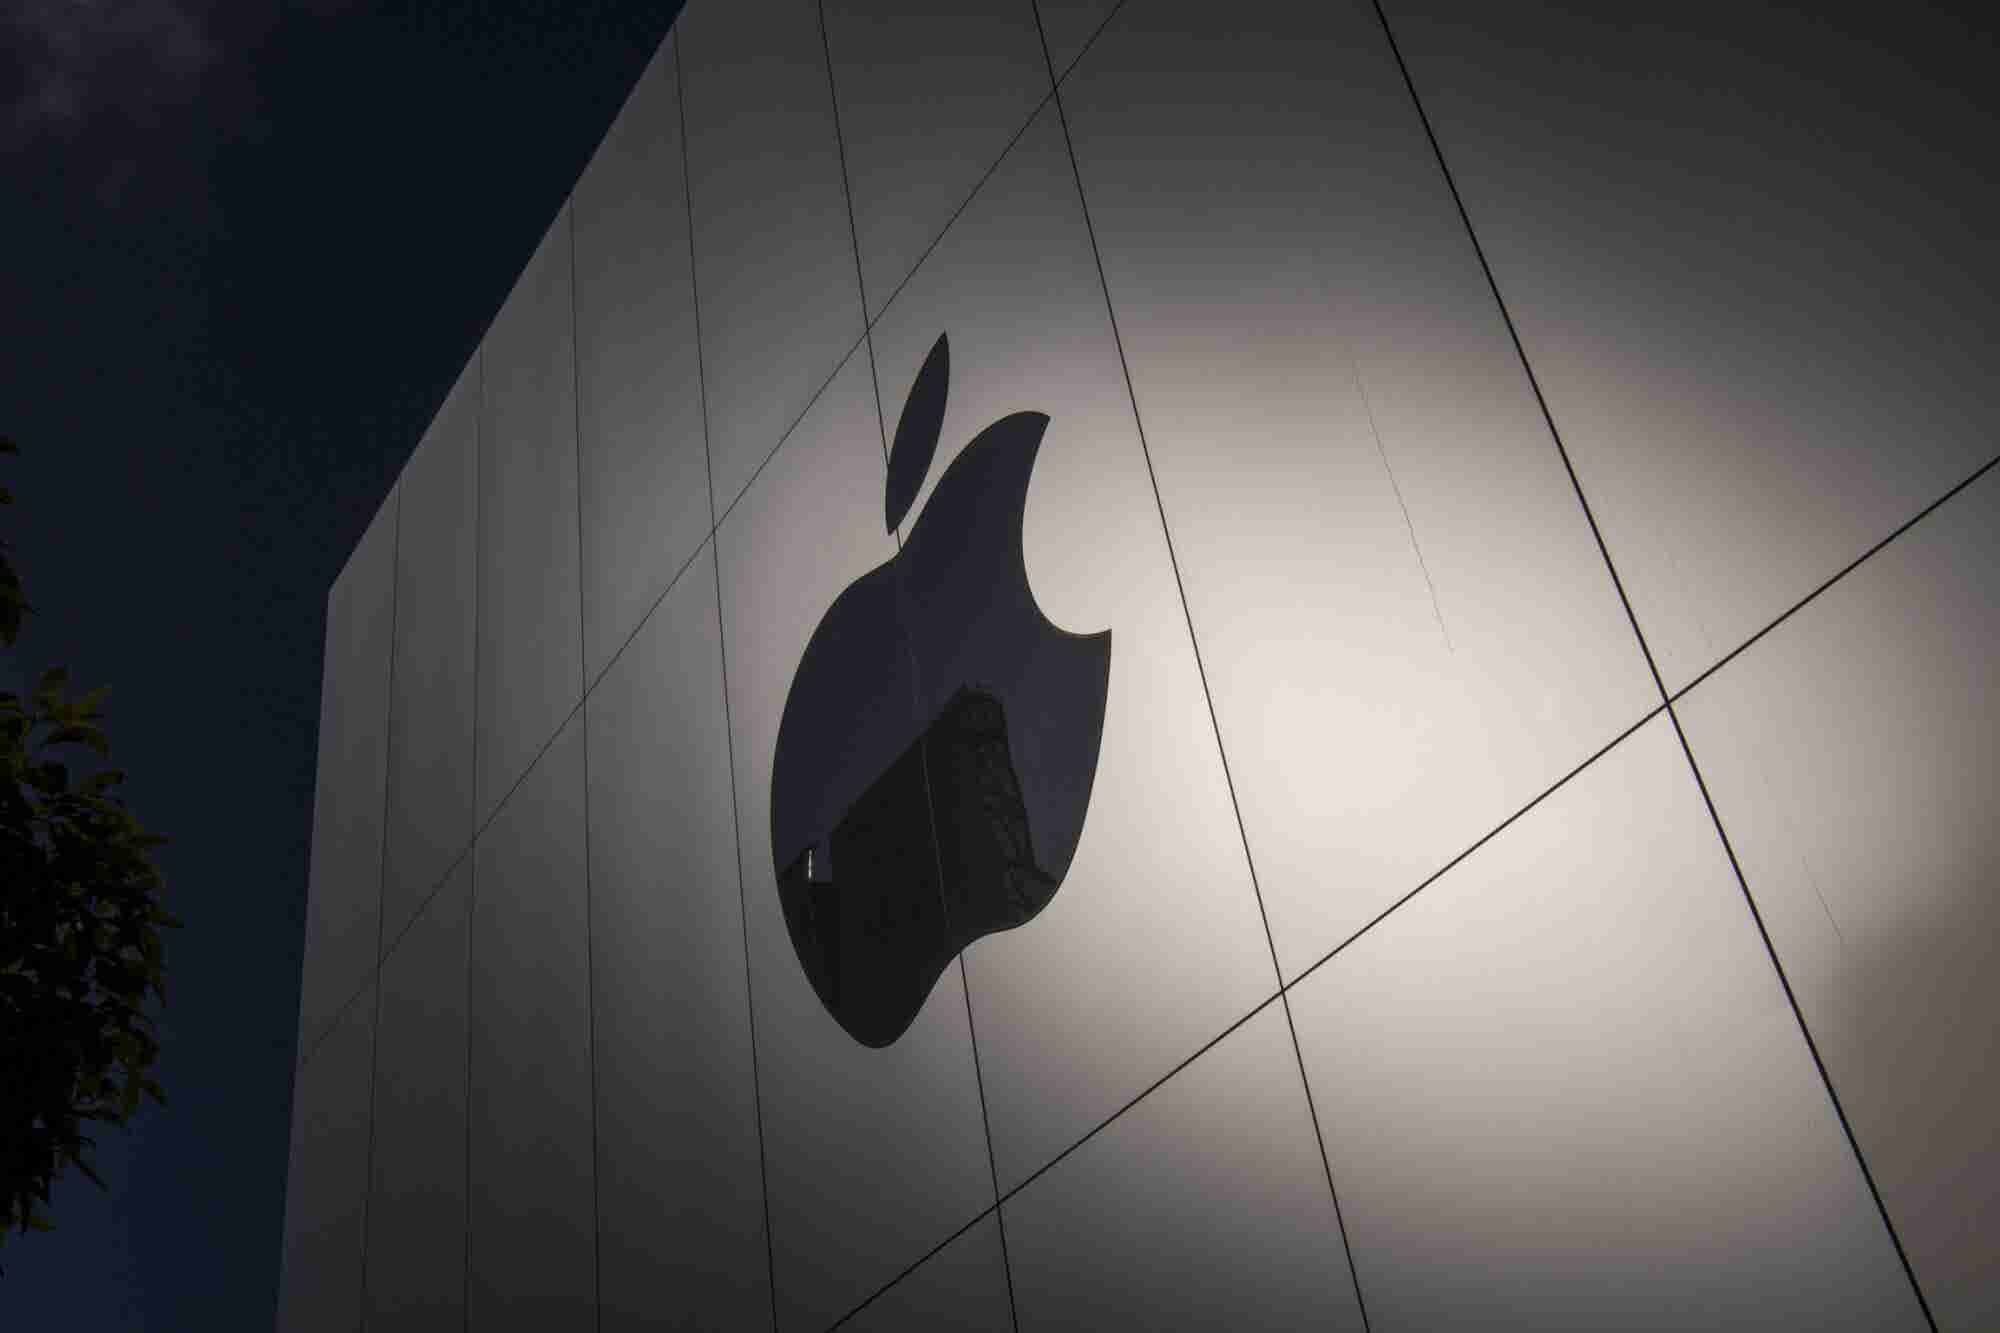 Apple Wins the Race to $1 Trillion: Here Are the Key Insights From Thi...